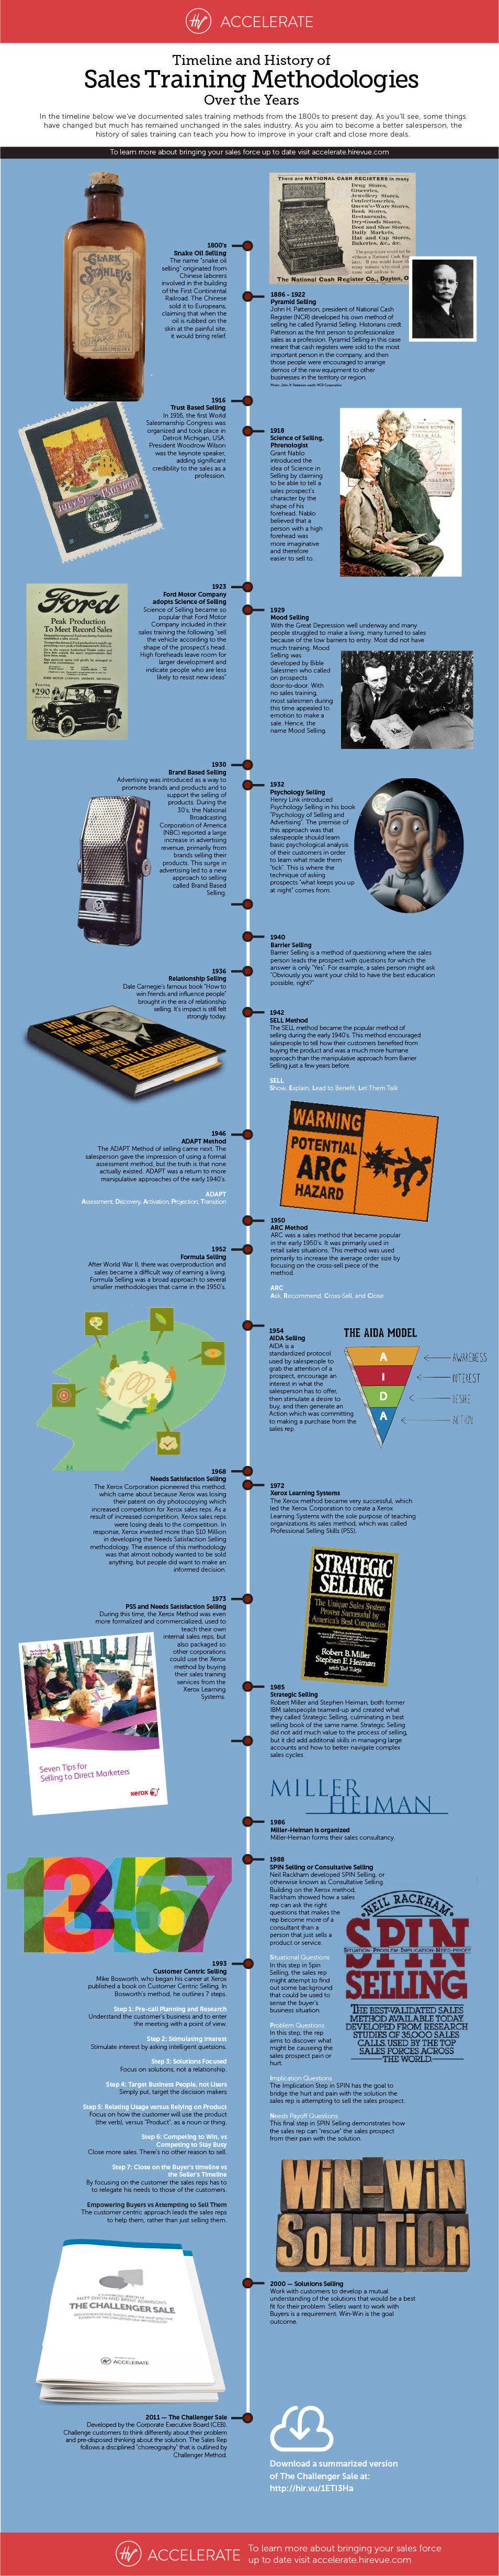 infographic-sales-methodologies-timeline.png